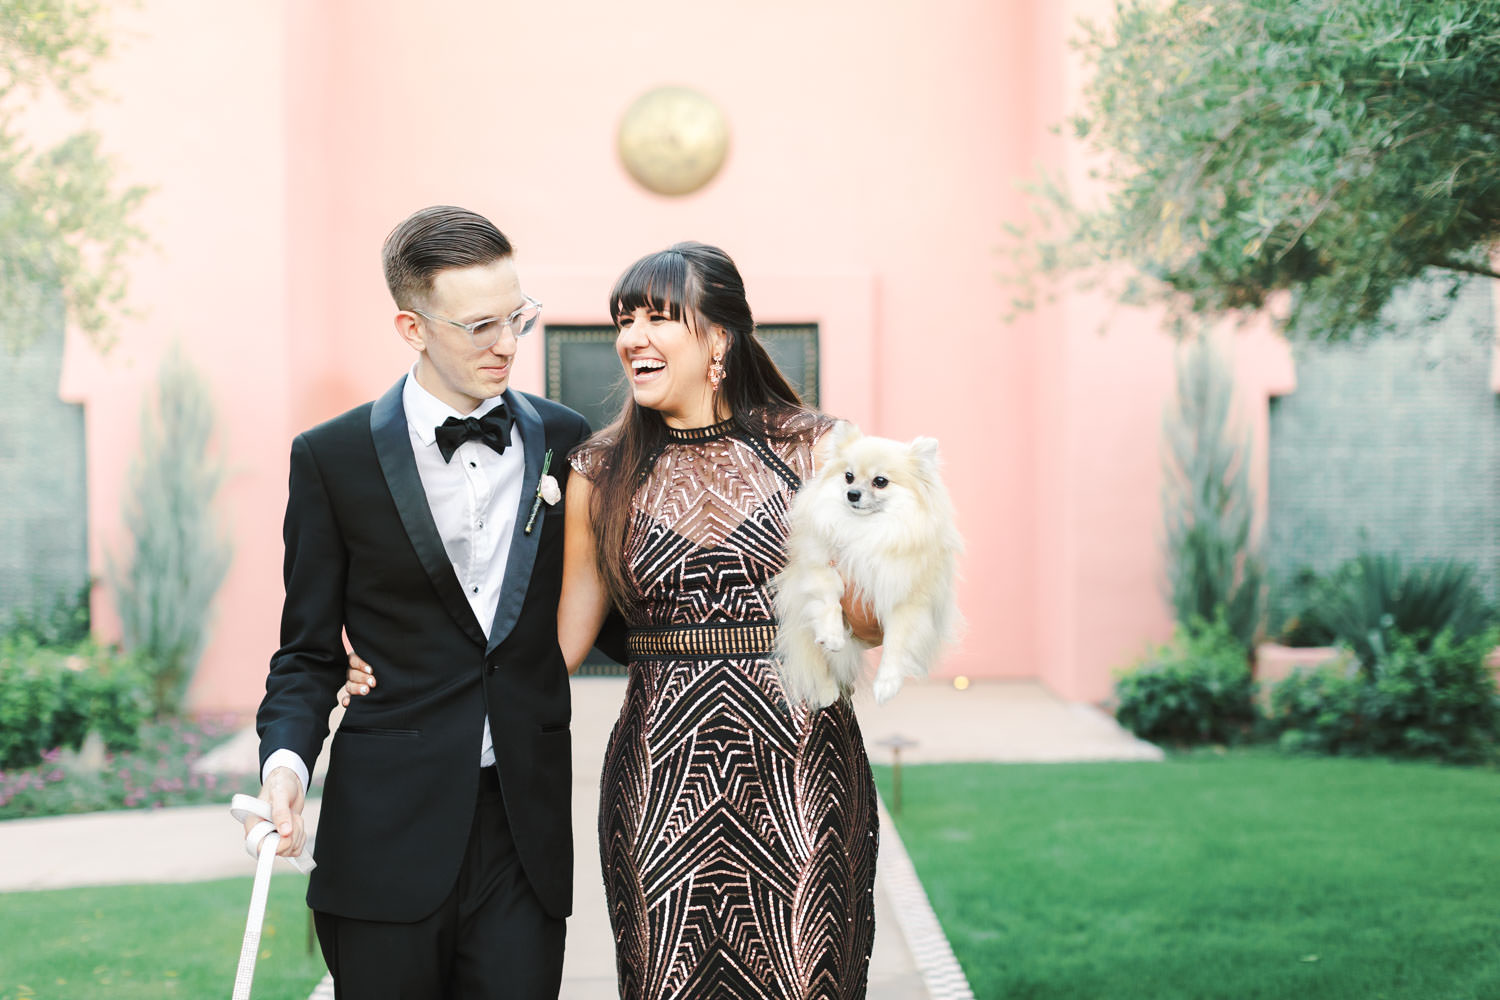 Image of bride and groom with dogs in front of the pink entrance to Sands Hotel spa in Indian Wells, Cavin Elizabeth Photography